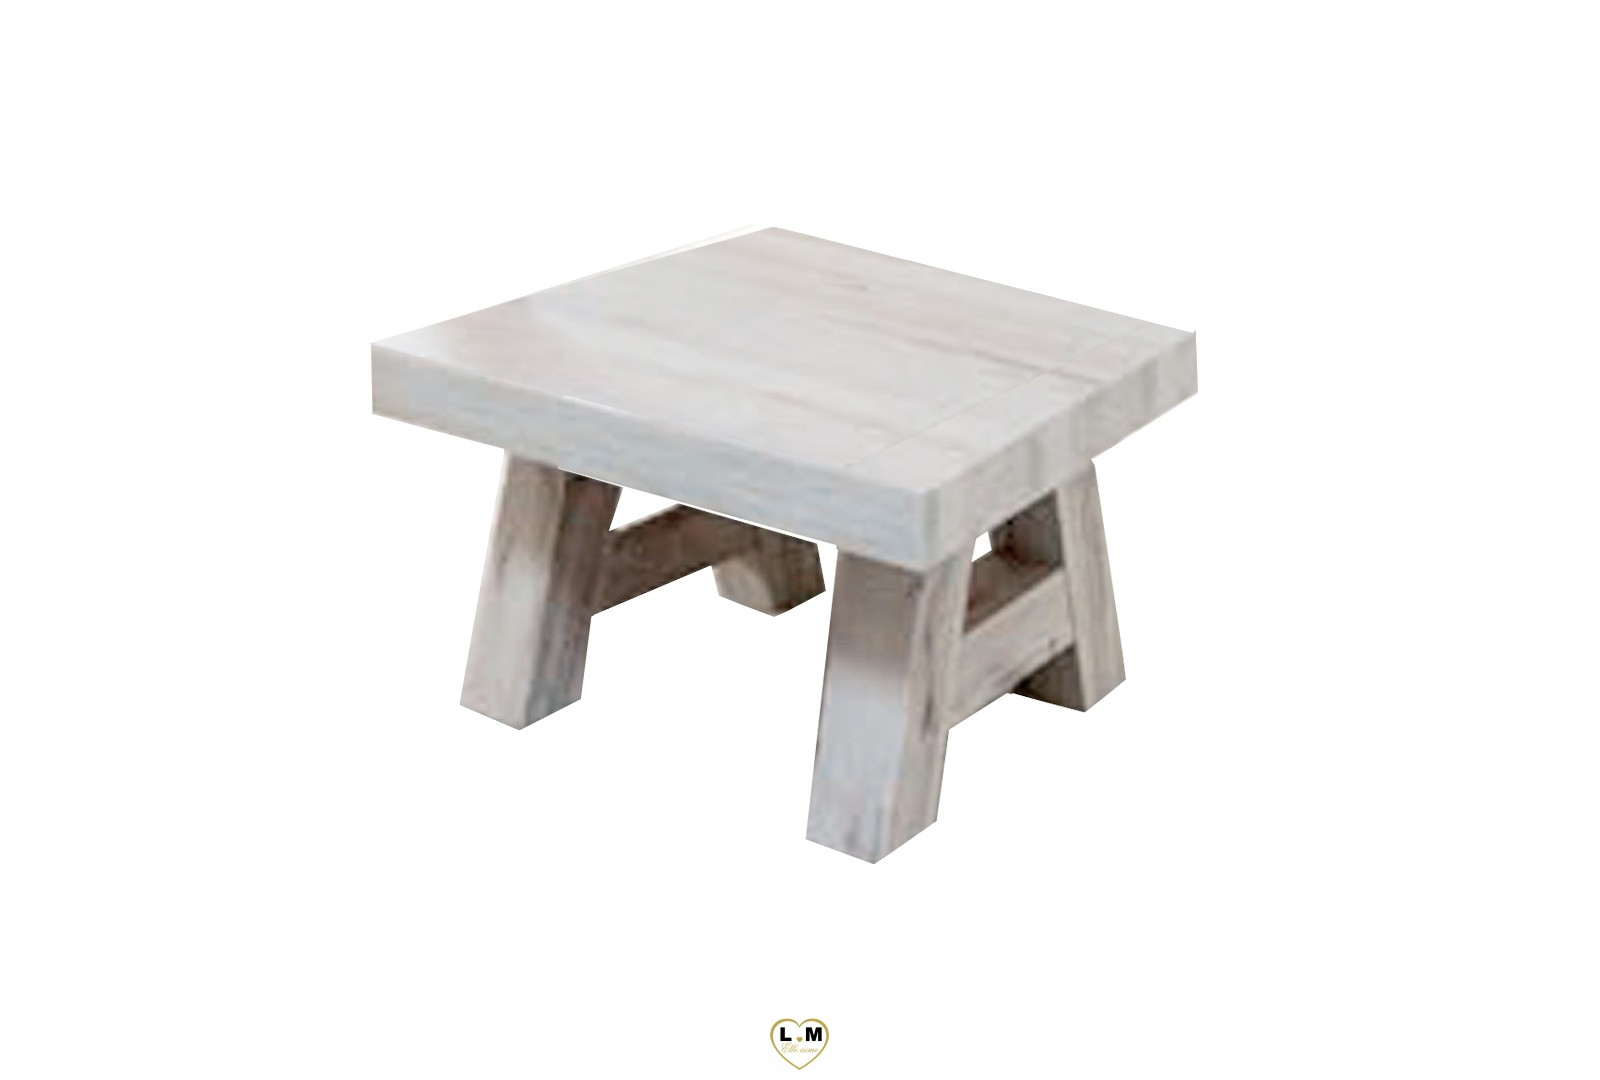 Emejing table salle a manger blanc vieilli pictures for Table basse design blanc laque